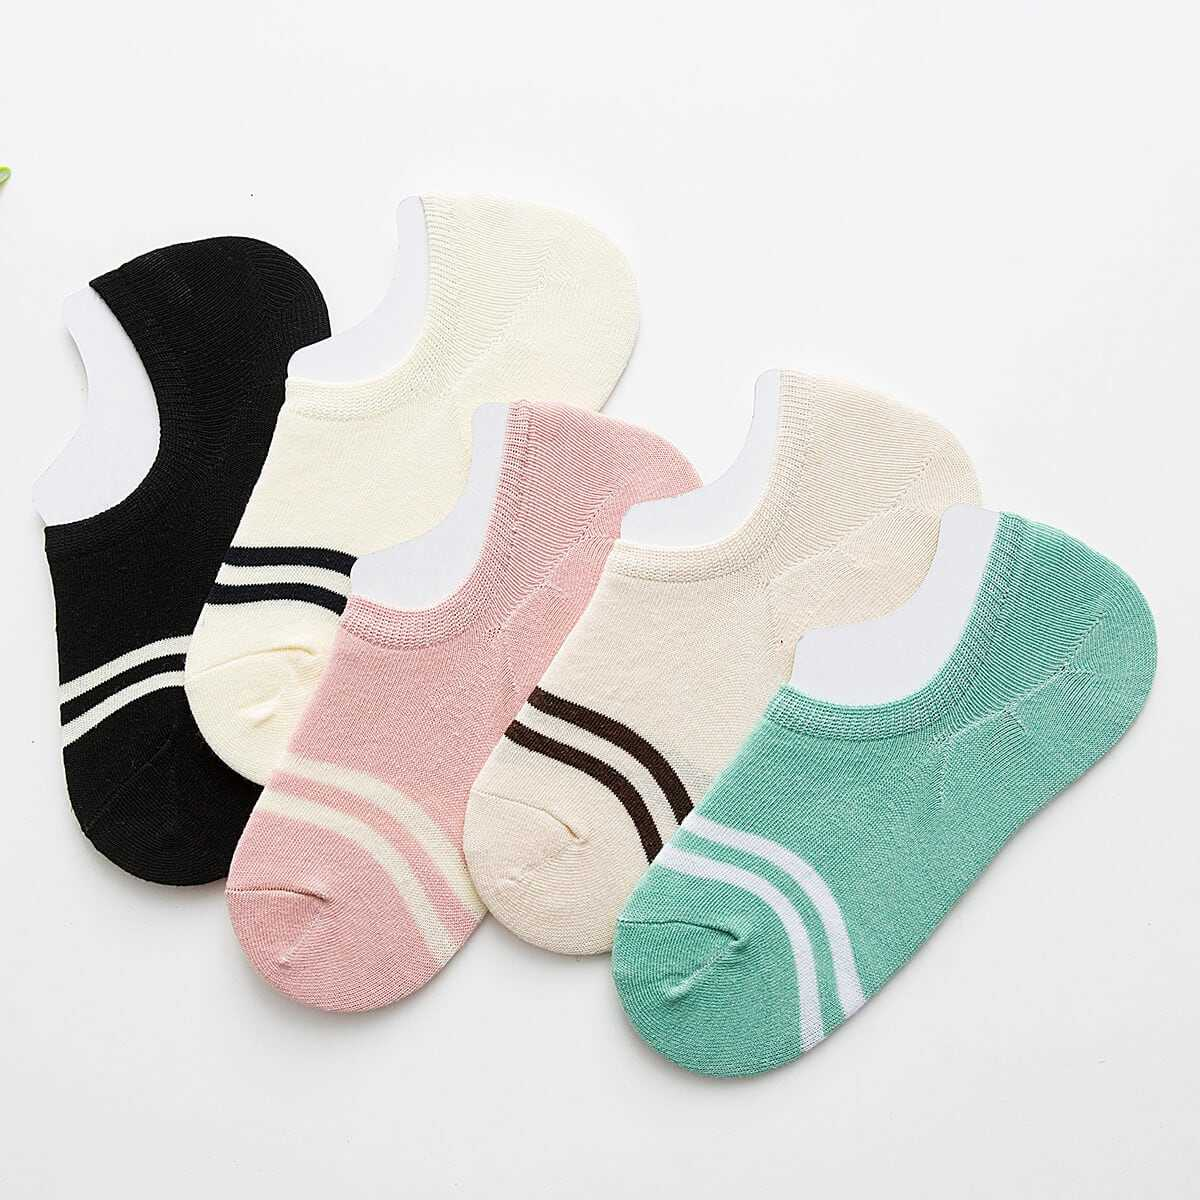 Striped Detail Invisible Socks 5Pairs in Multicolor by ROMWE on GOOFASH